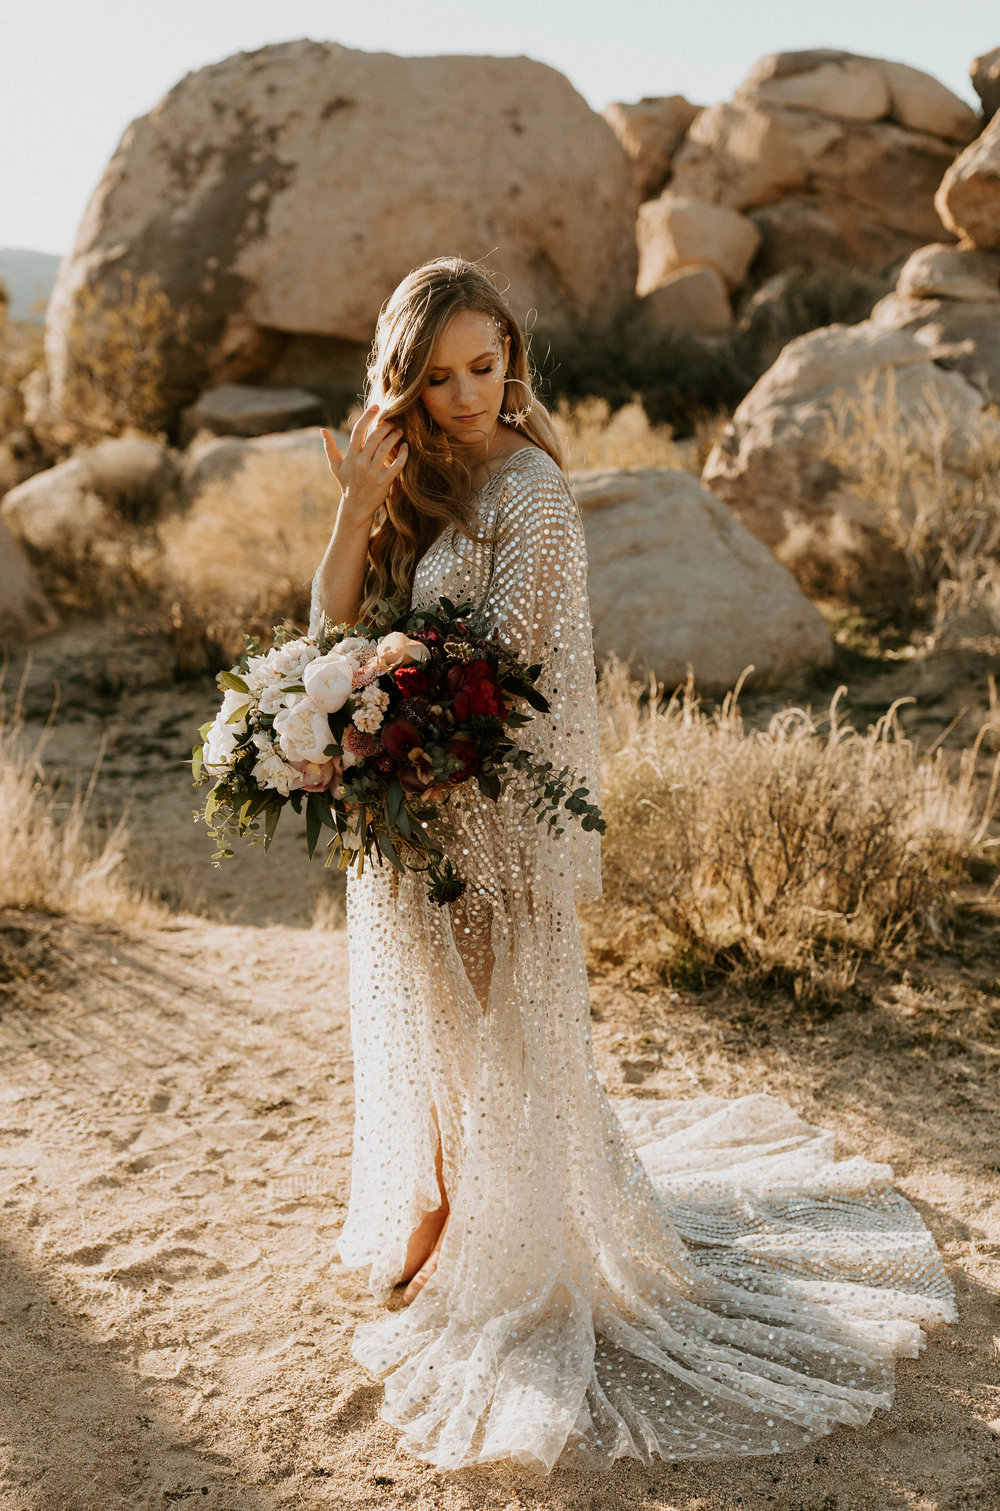 Bride in Joshua Tree National Park